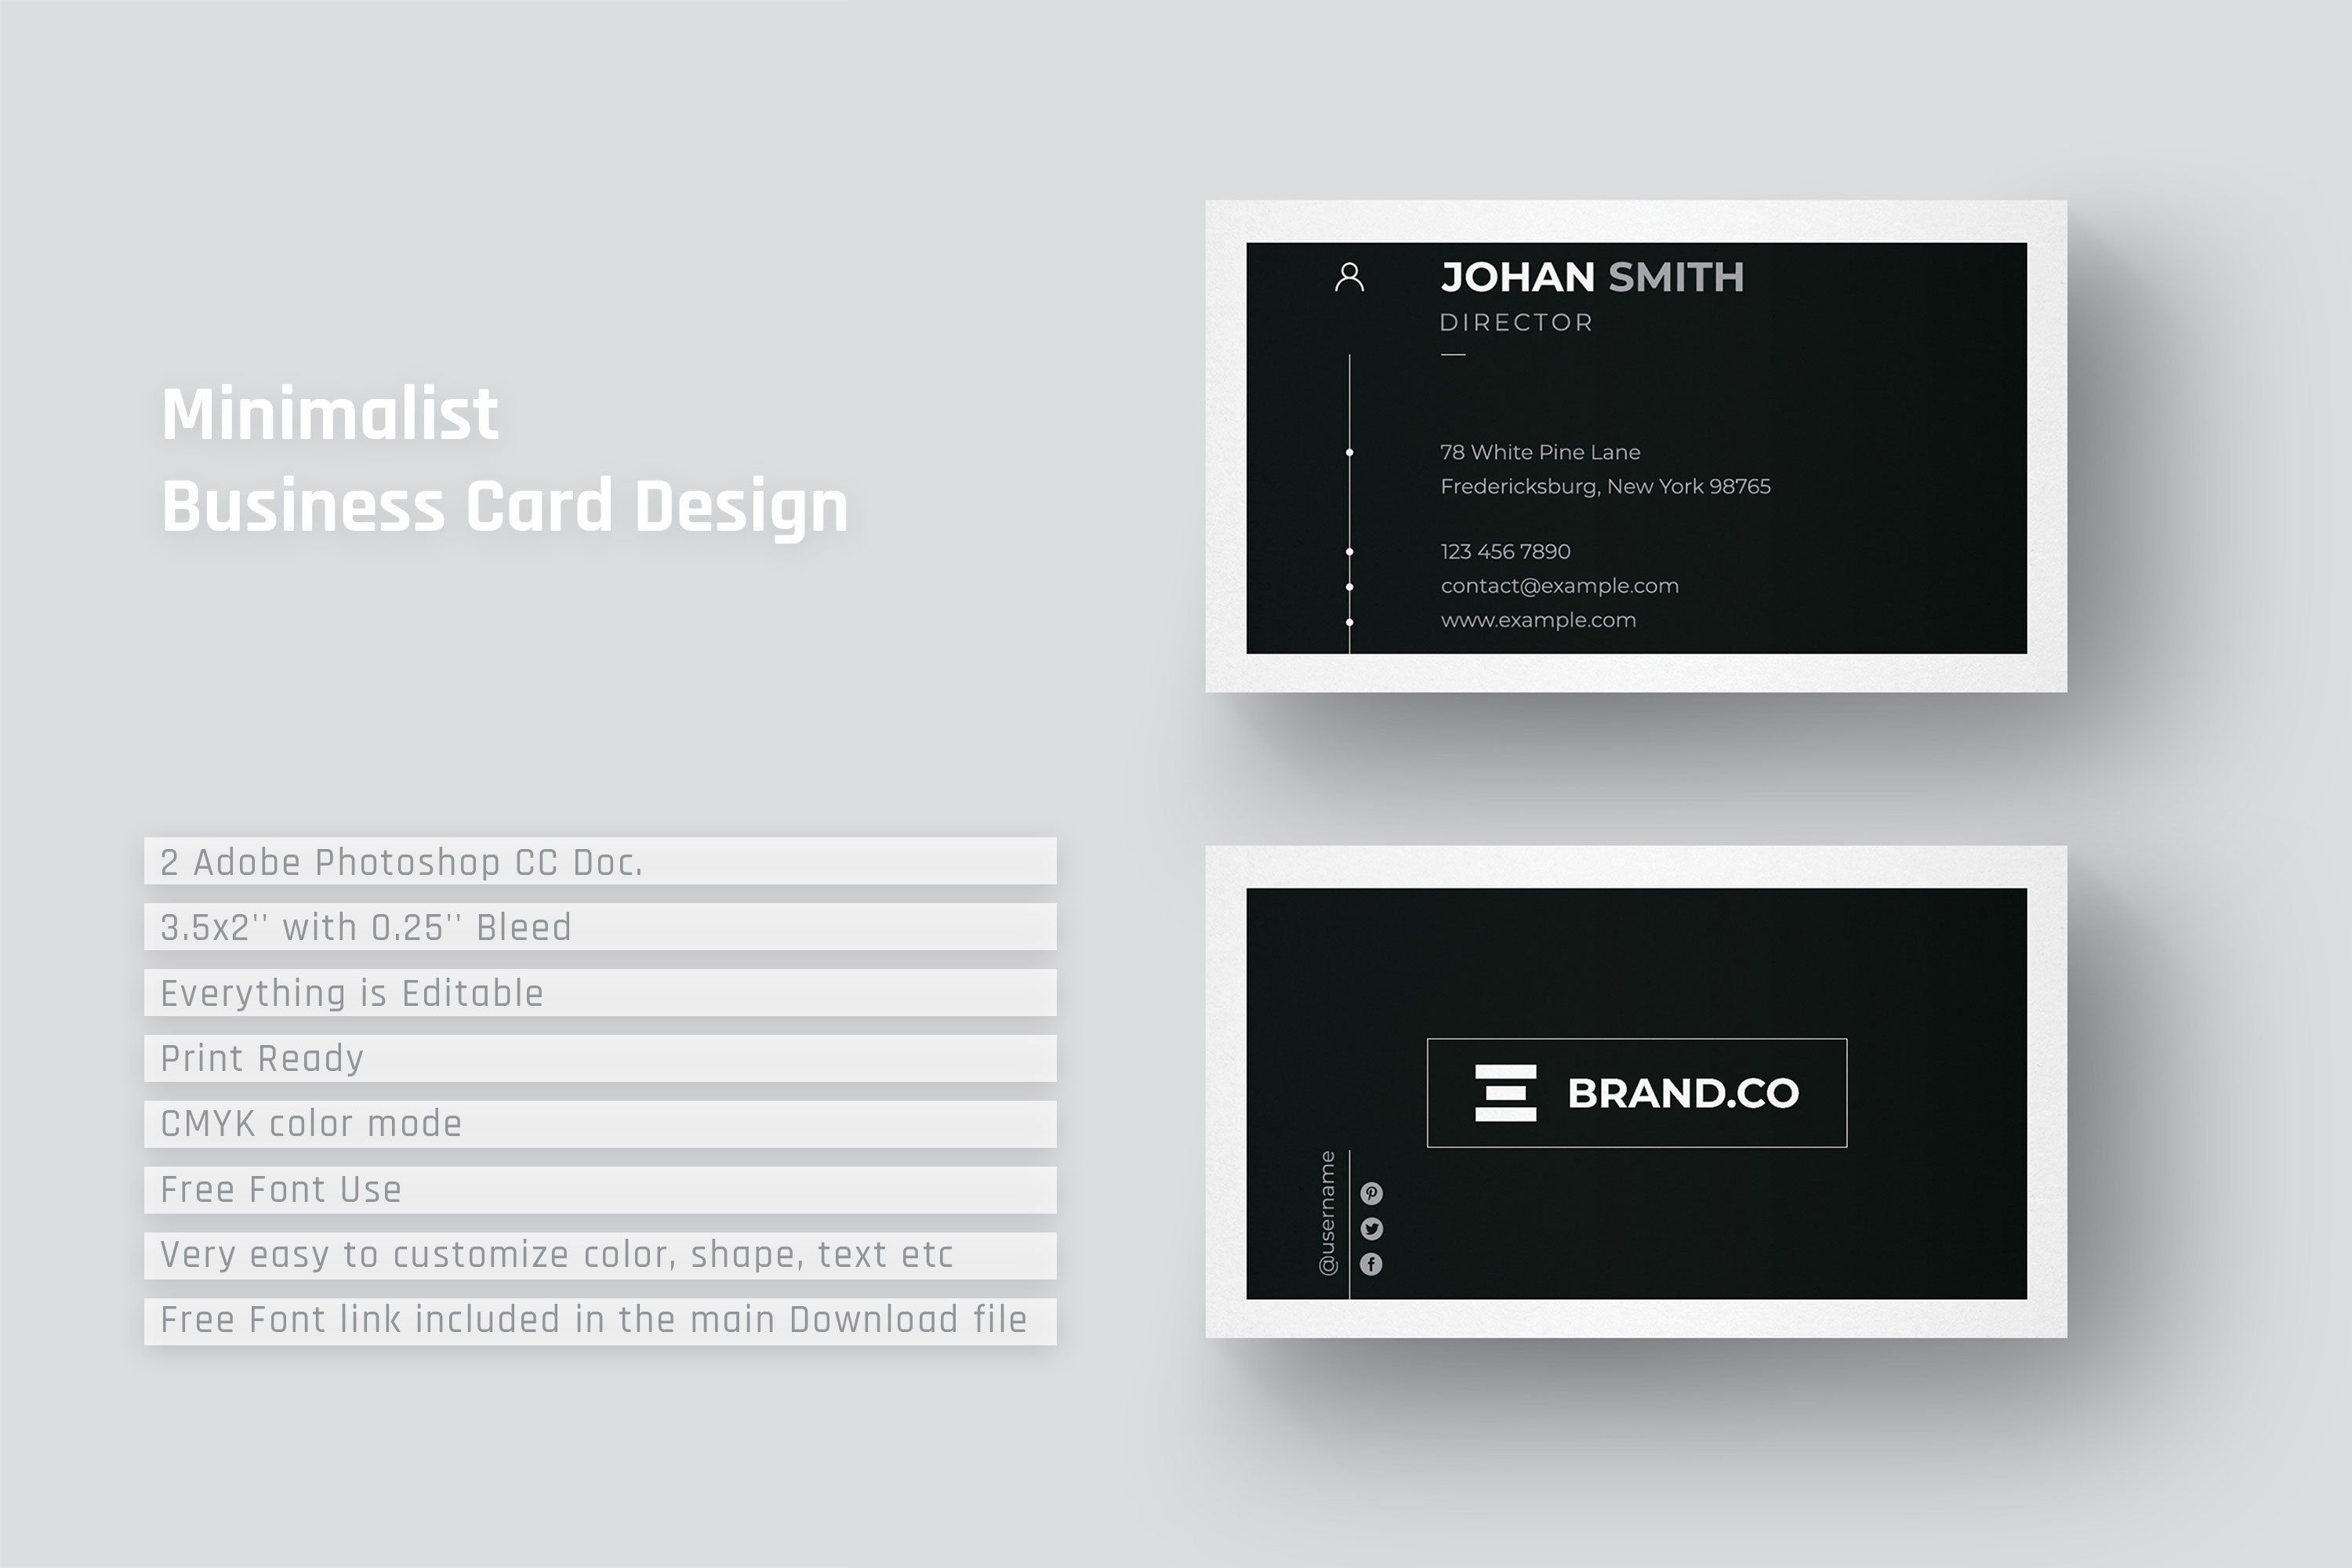 Minimalist Business Card Design Business Card Design Simple Simple Business Cards Minimalist Business Cards